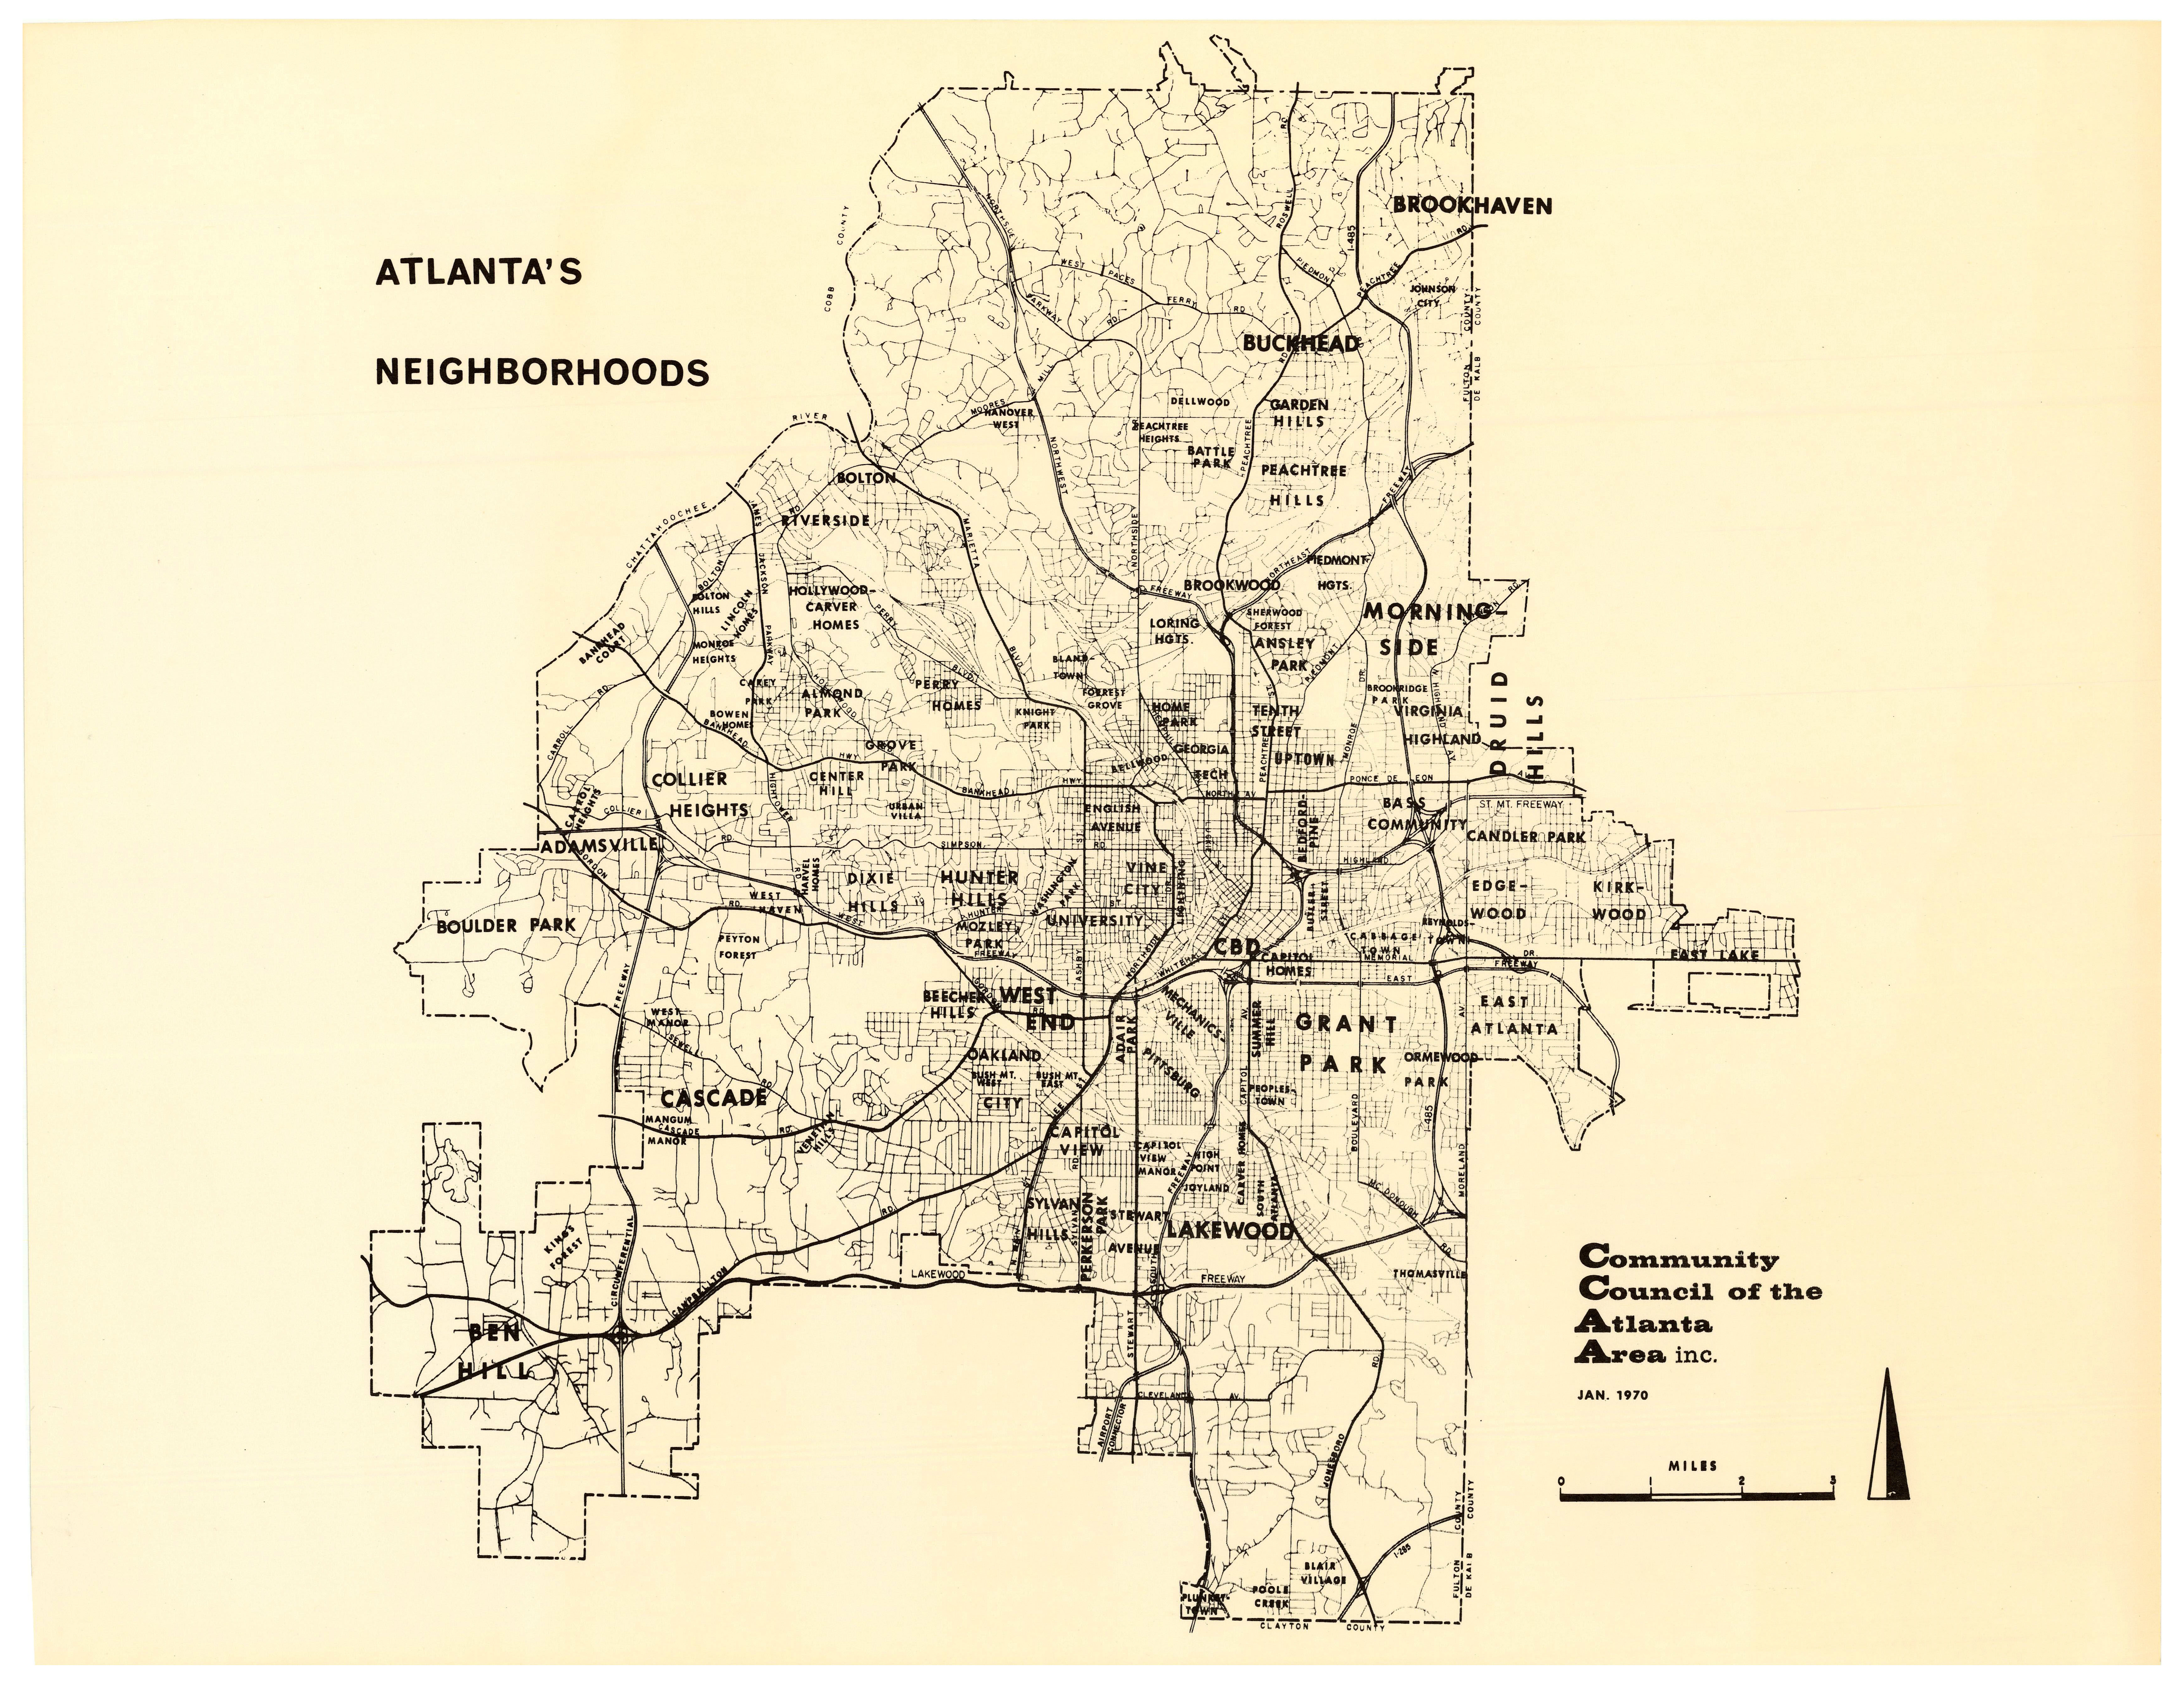 Atlanta's Neighborhoods